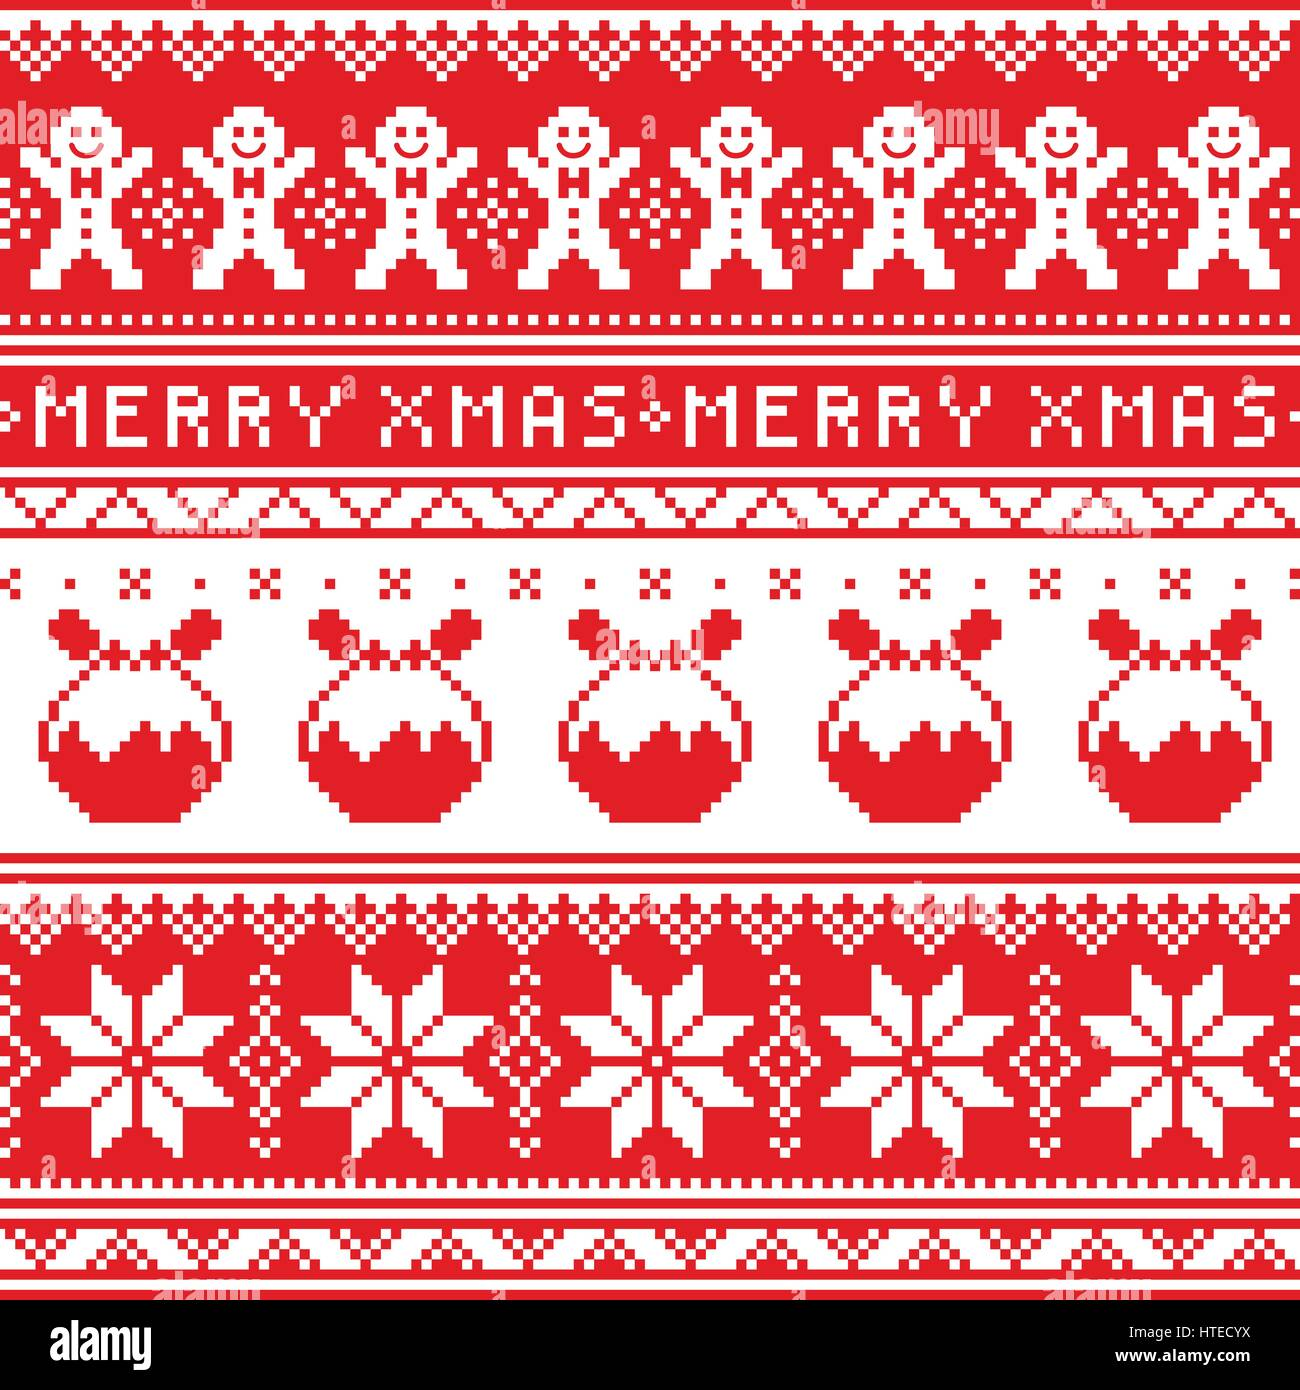 18339a465028 Christmas jumper or sweater seamless pattern with gingerbread man and  Christmas pudding